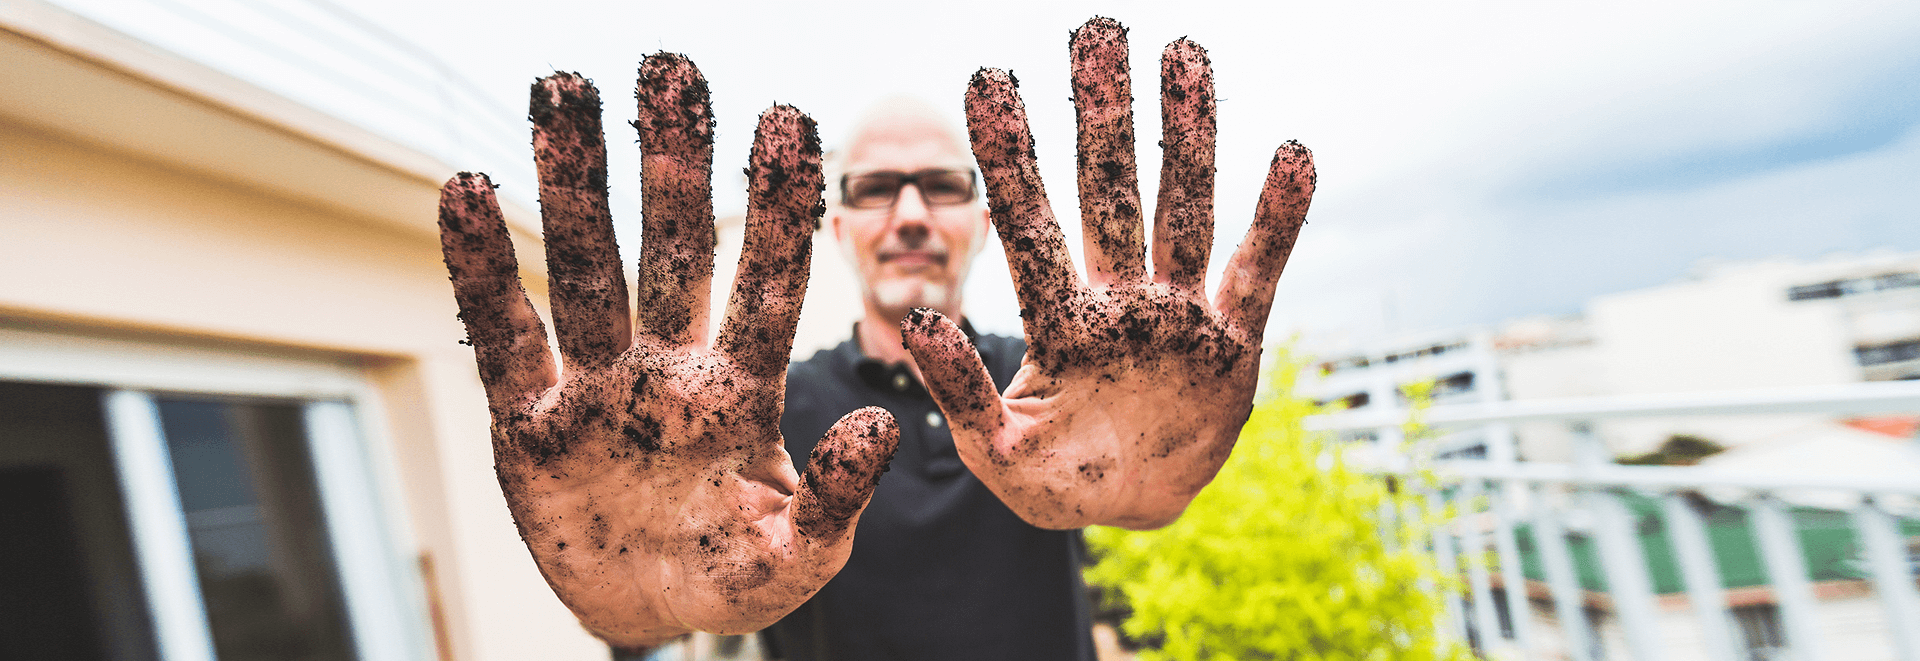 Man with dirt in hands